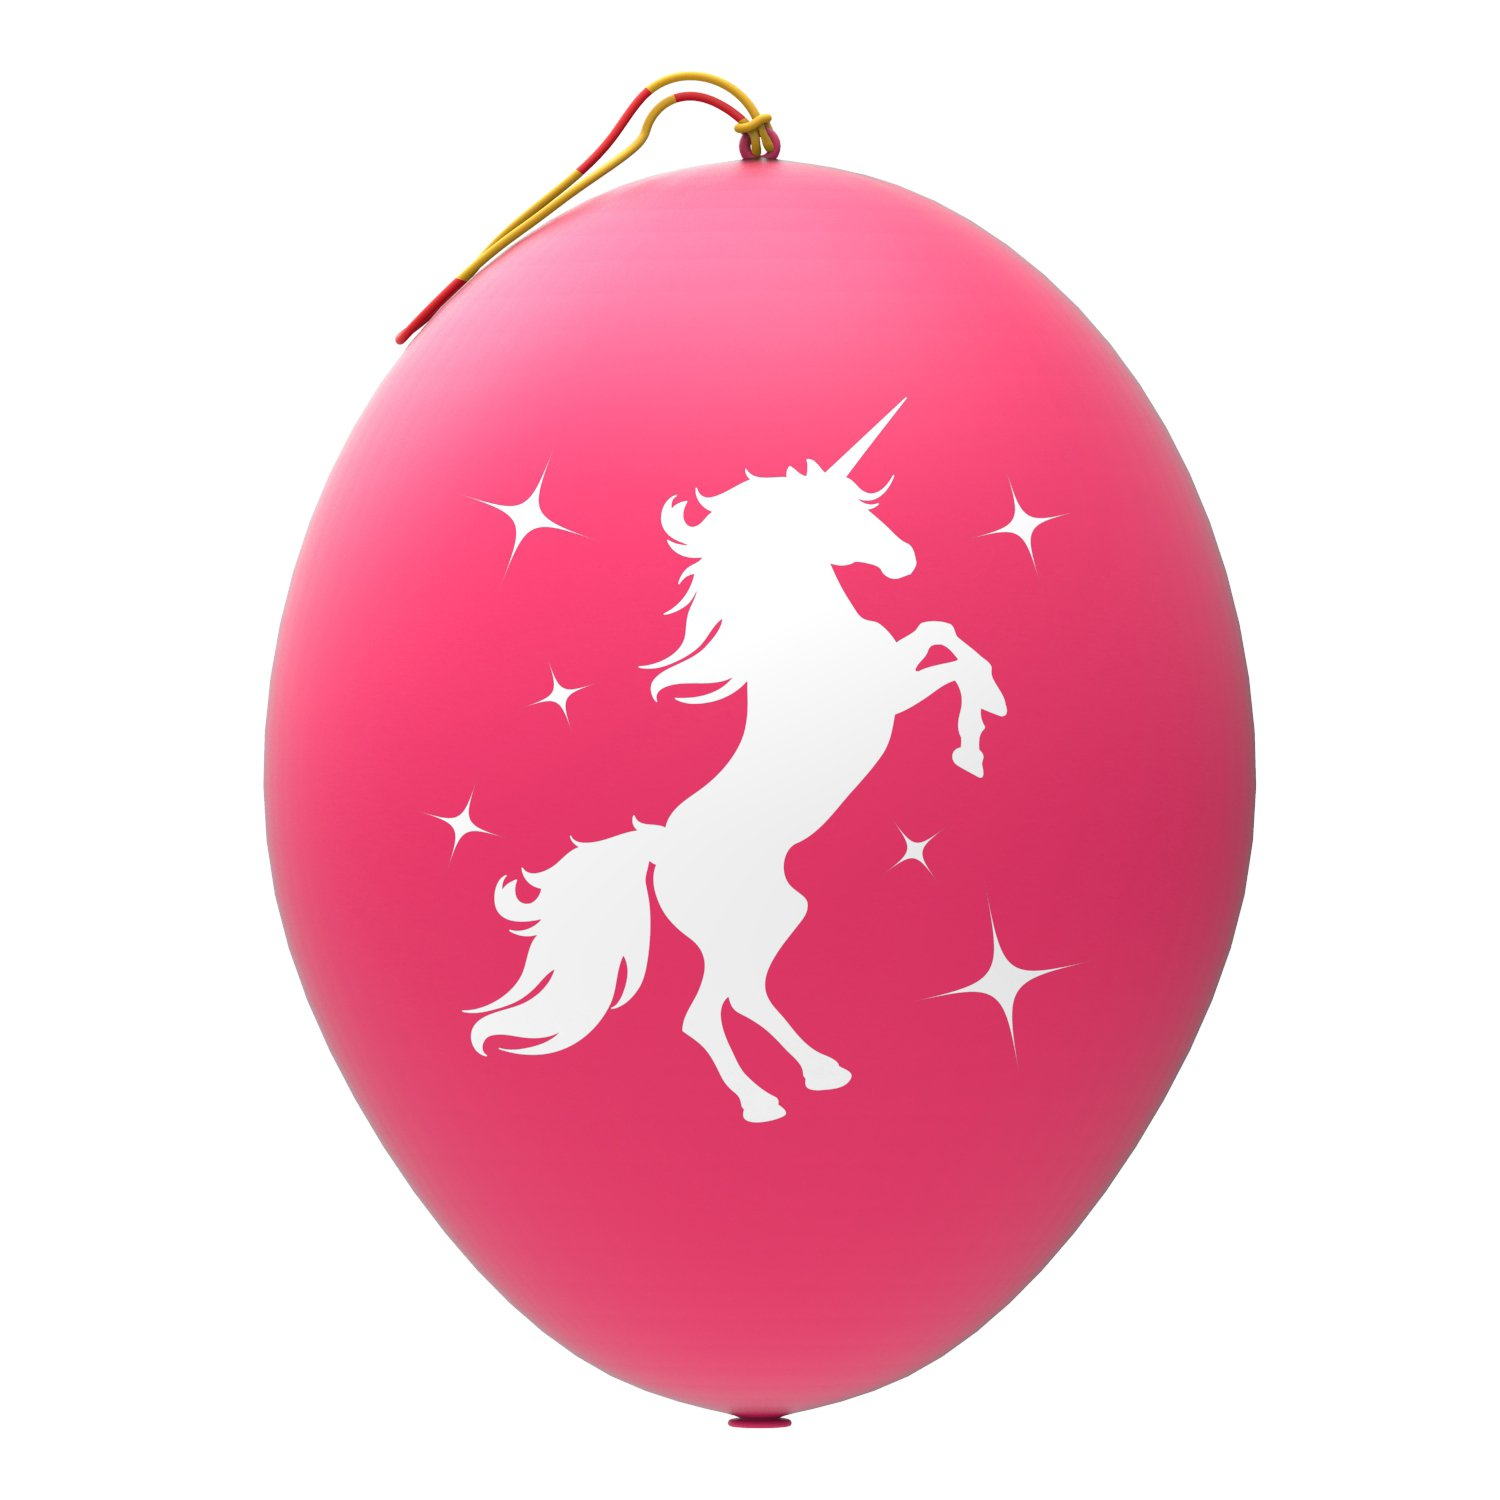 24 Pink Unicorn Punch Balloons - Best for Birthday Gift Bags, Kids Games, Princess Parties and Unicorn Party Supplies - Extra Large, Eco Friendly Natural Latex Punch Balls for Girls - By John & Judy